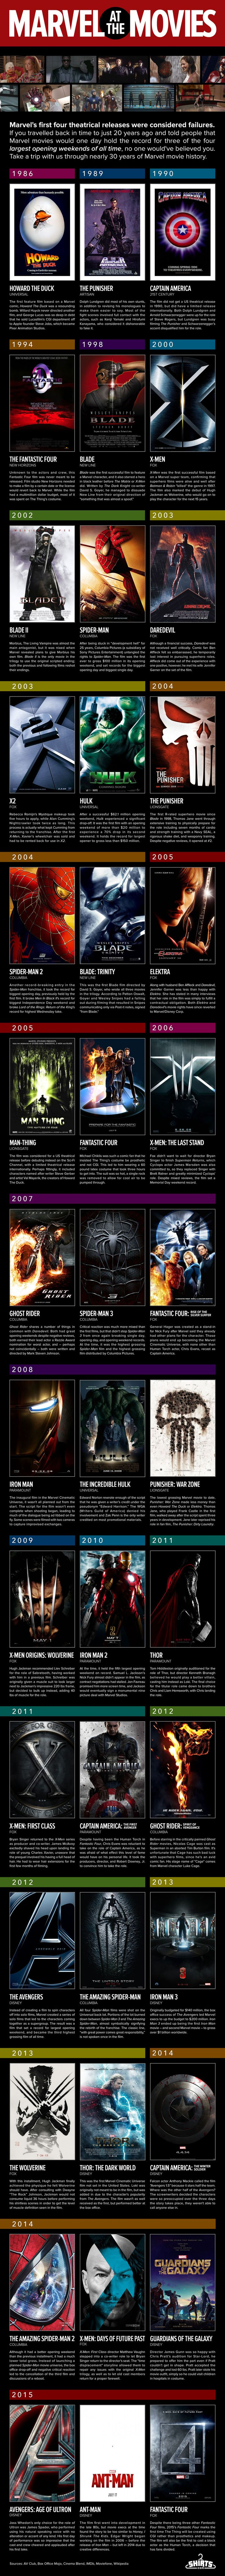 Marvel at the Movies #infographic #Movies